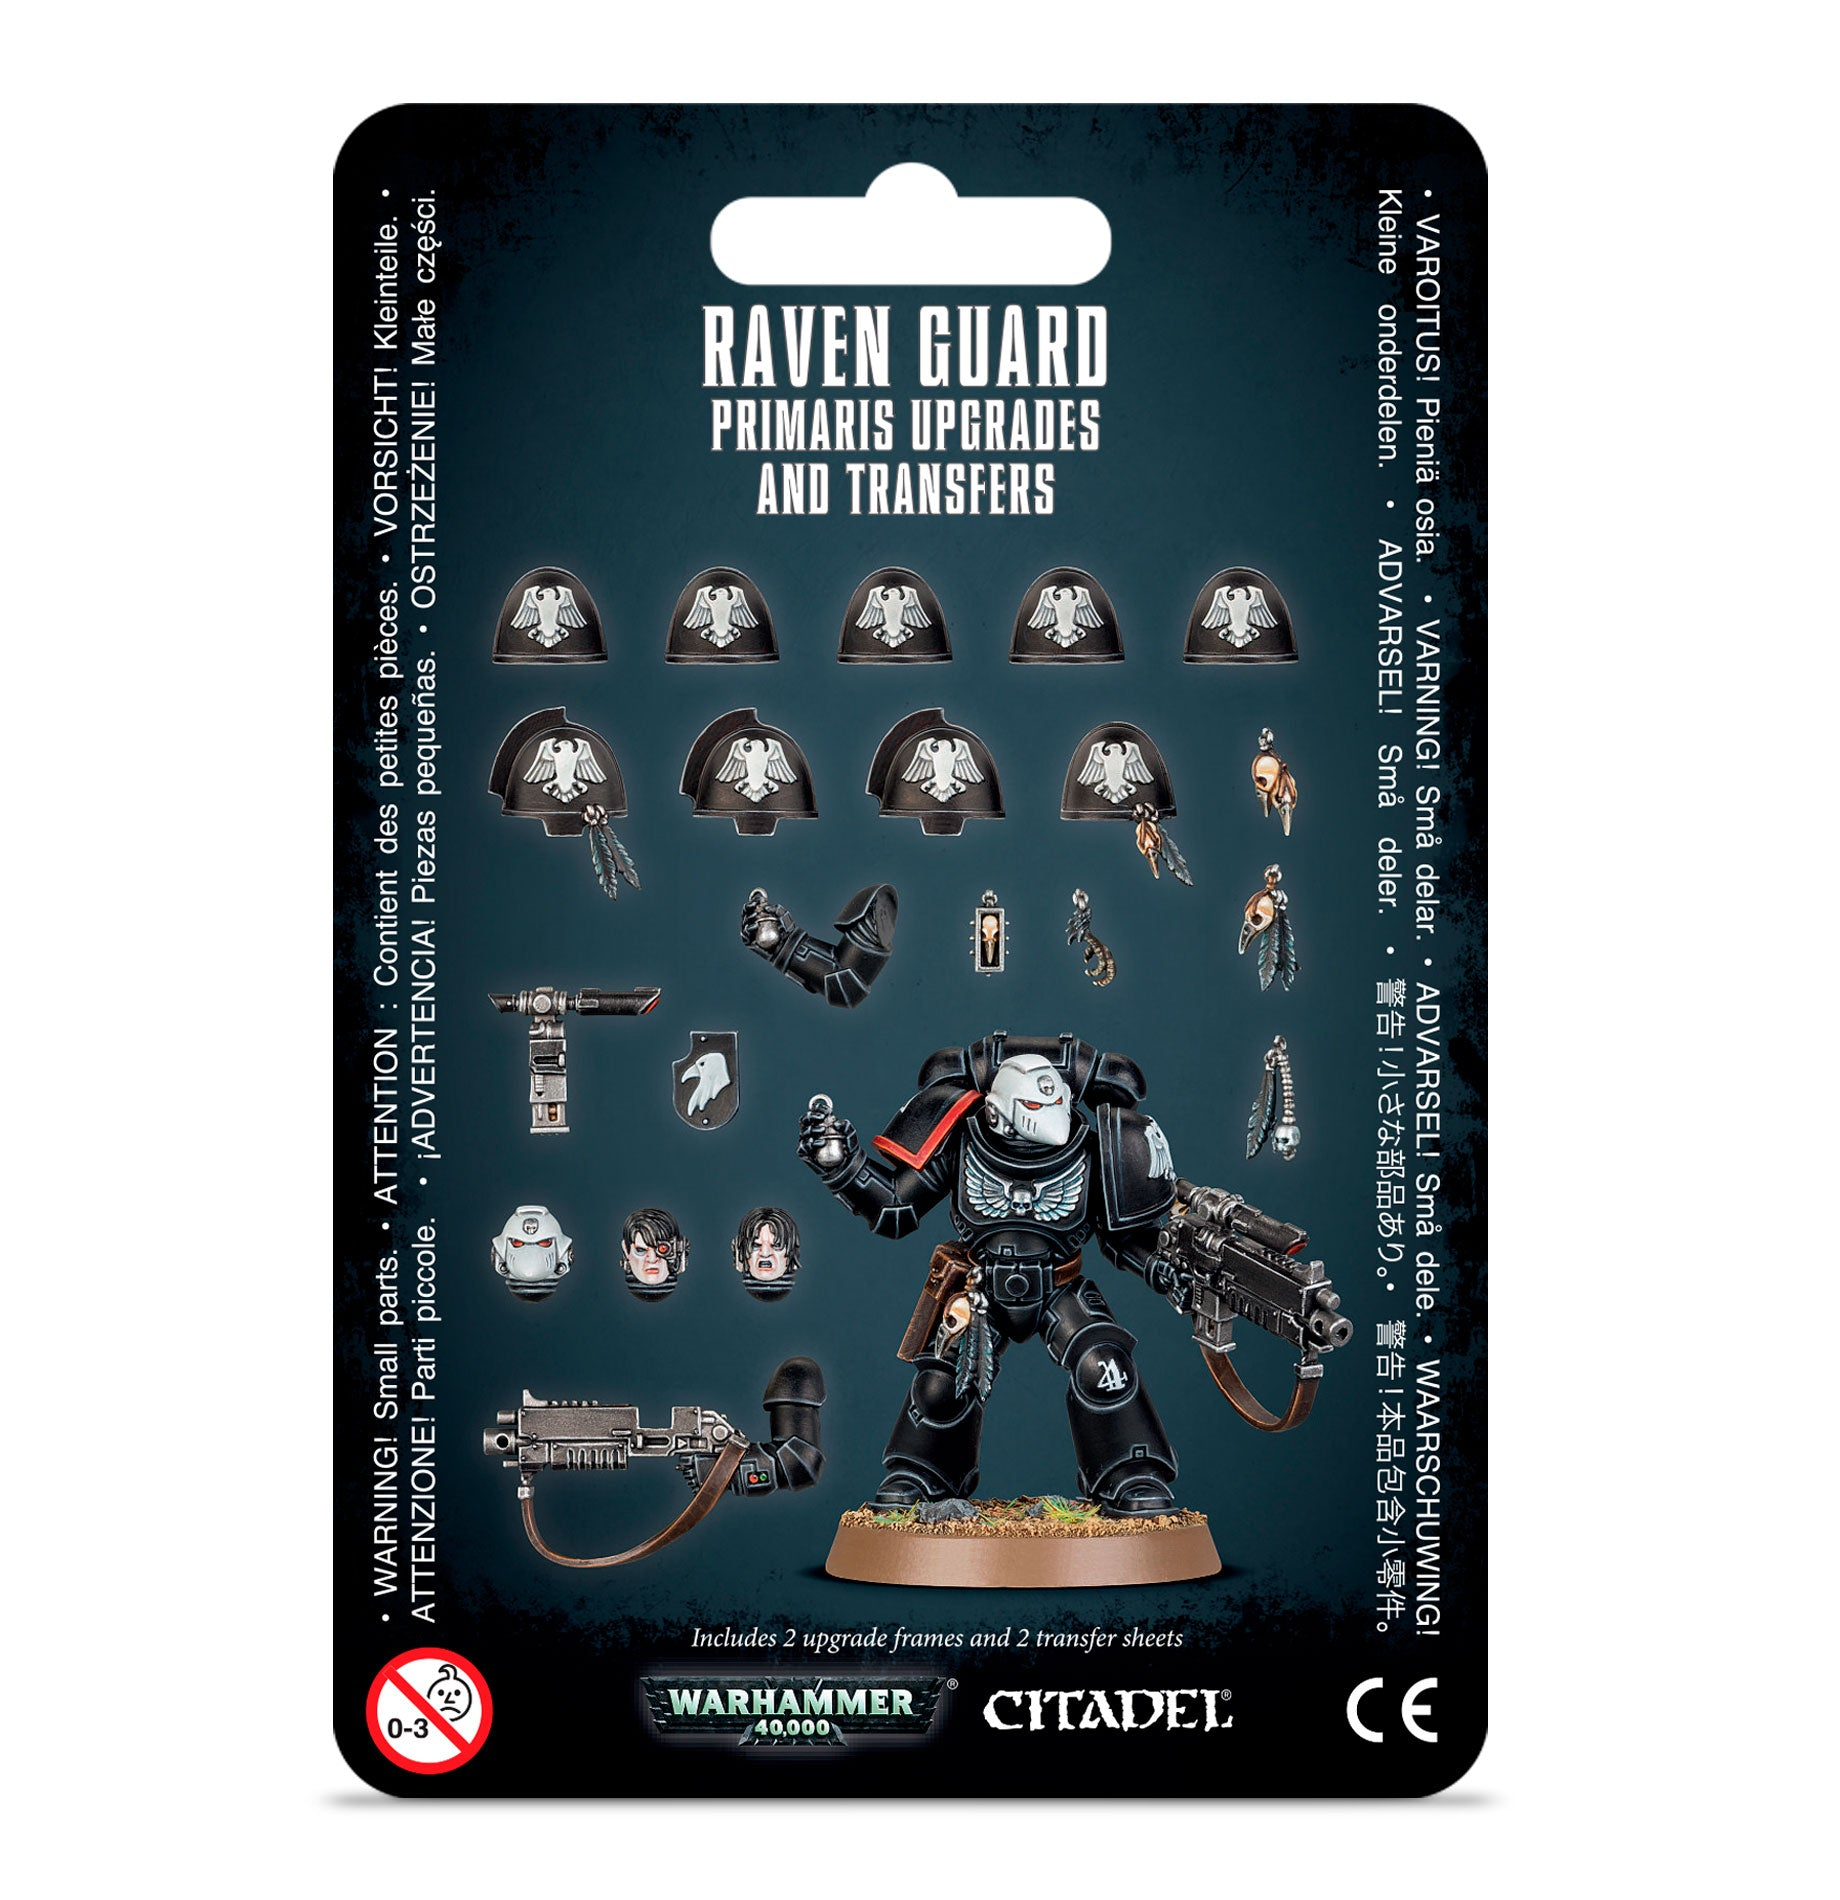 Raven Guard Primaris Upgrades and Transfers | Mythicos